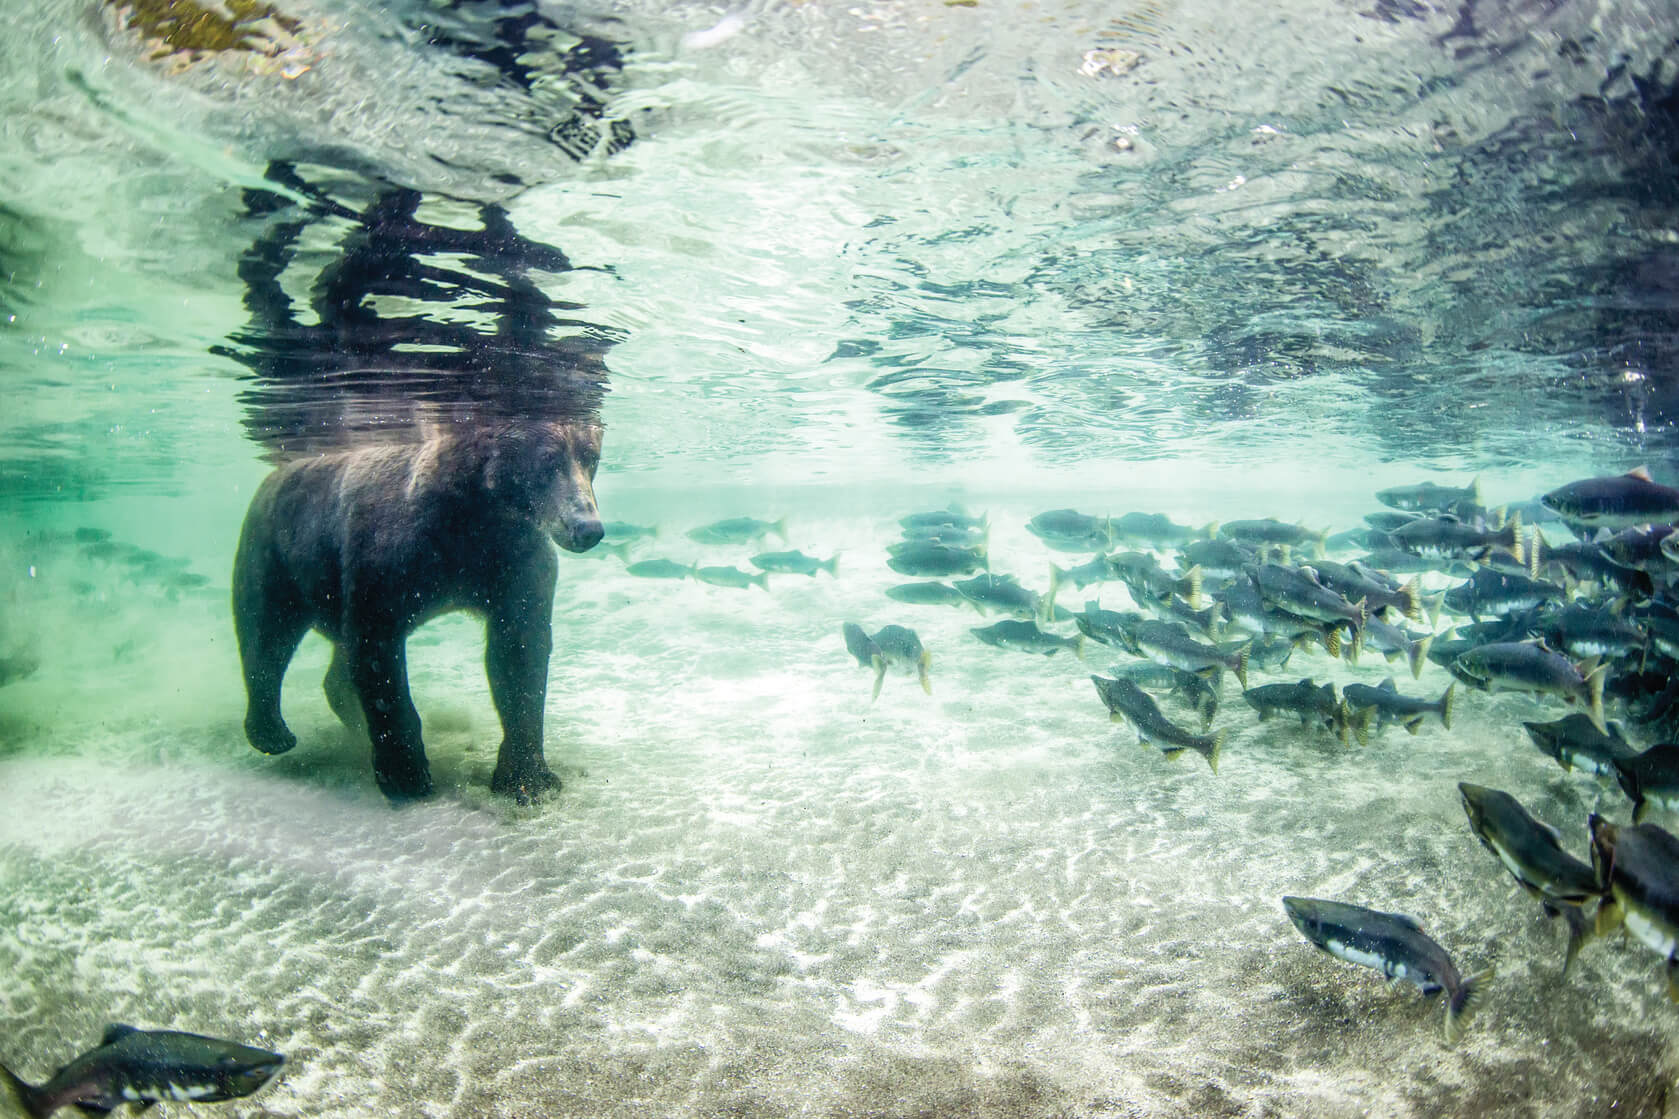 A bear walks under the water toward some fish